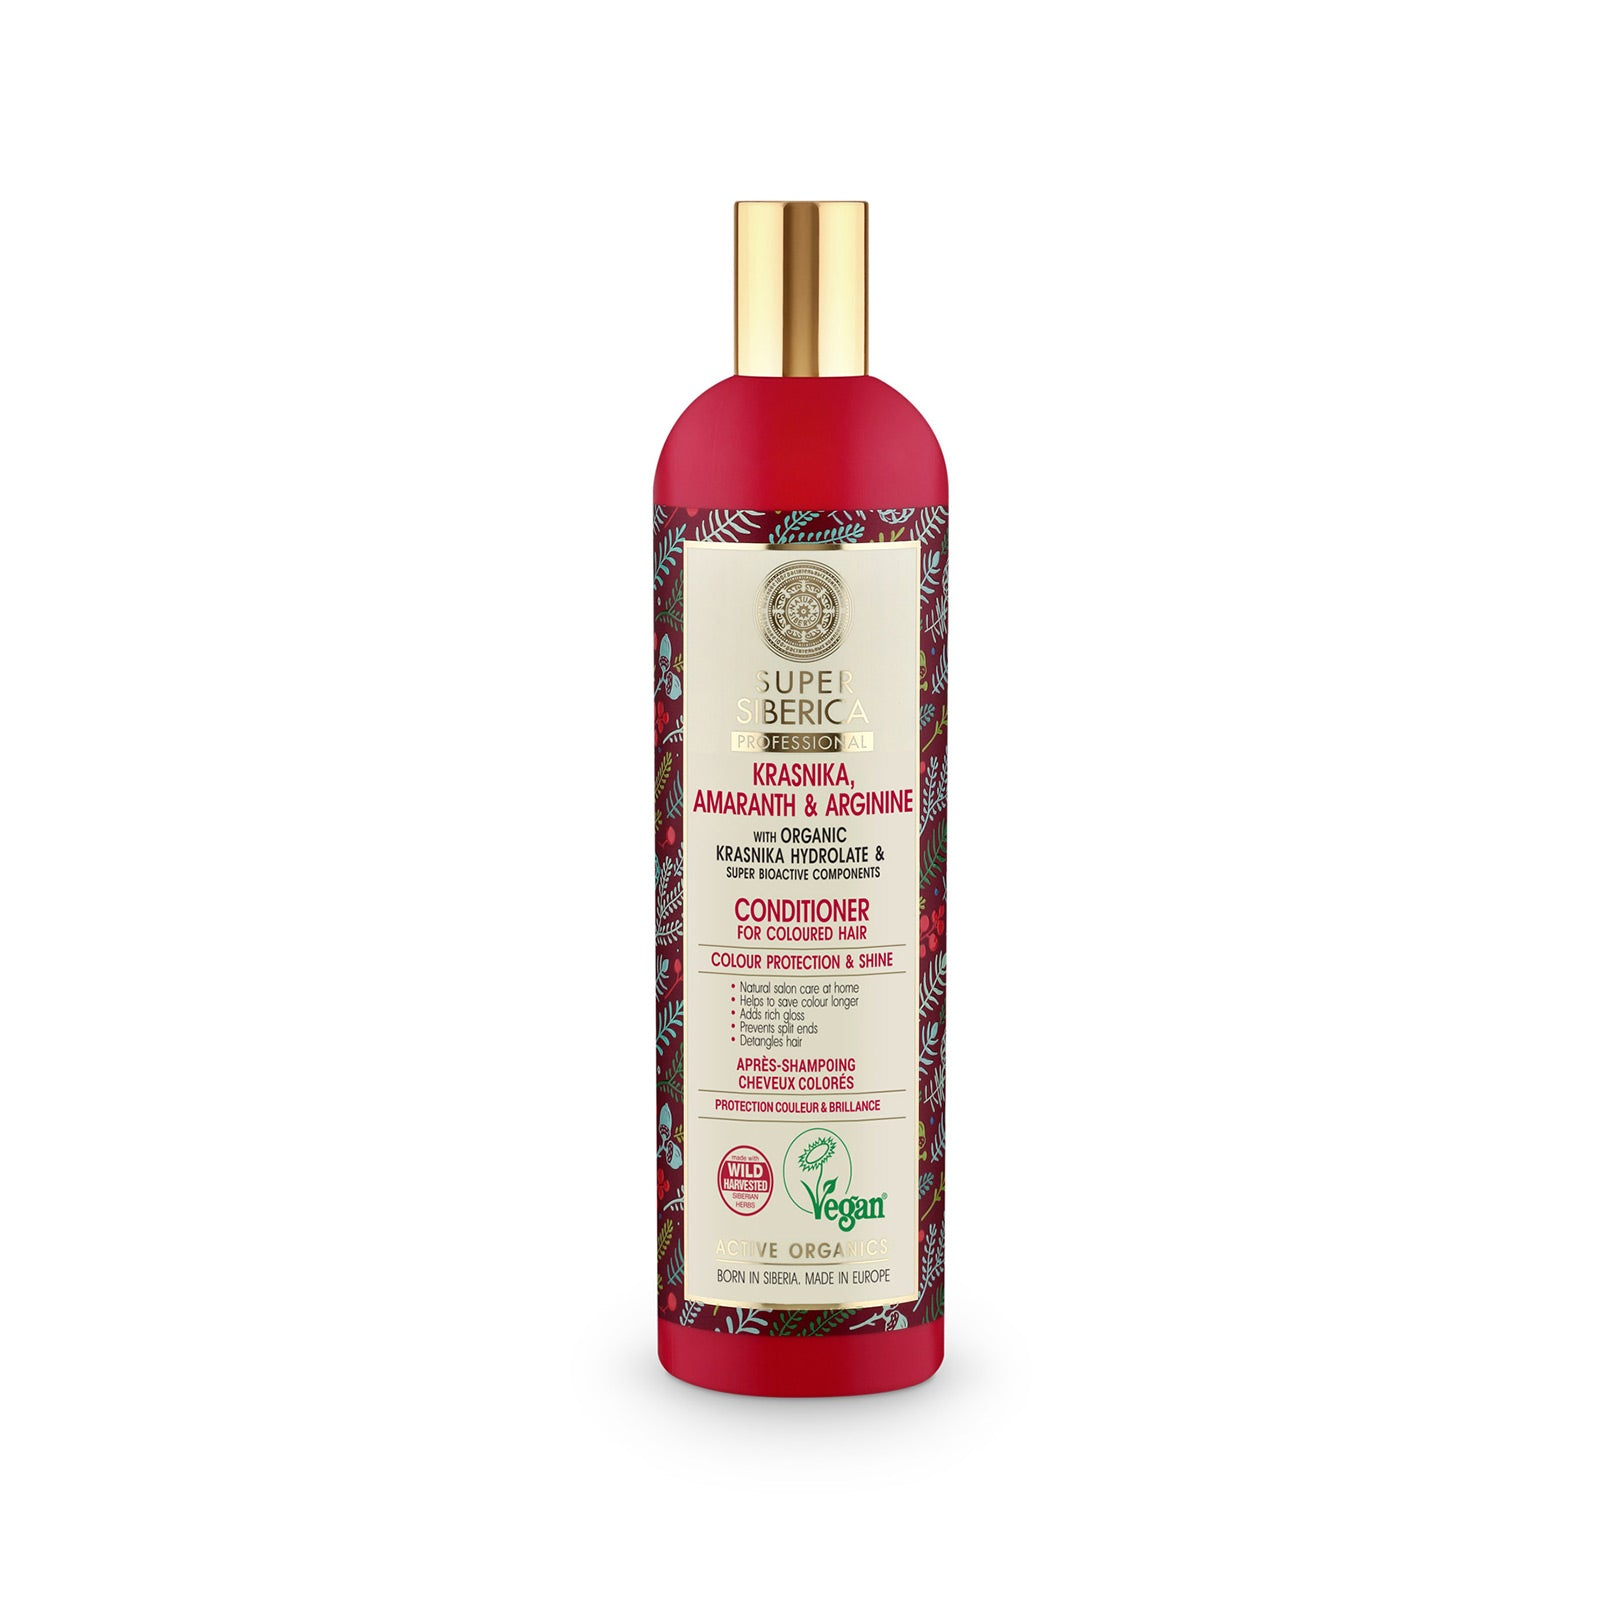 Super Siberica Krasnika, amaranth & arginine. Conditioner for Coloured Hair, 400 ml